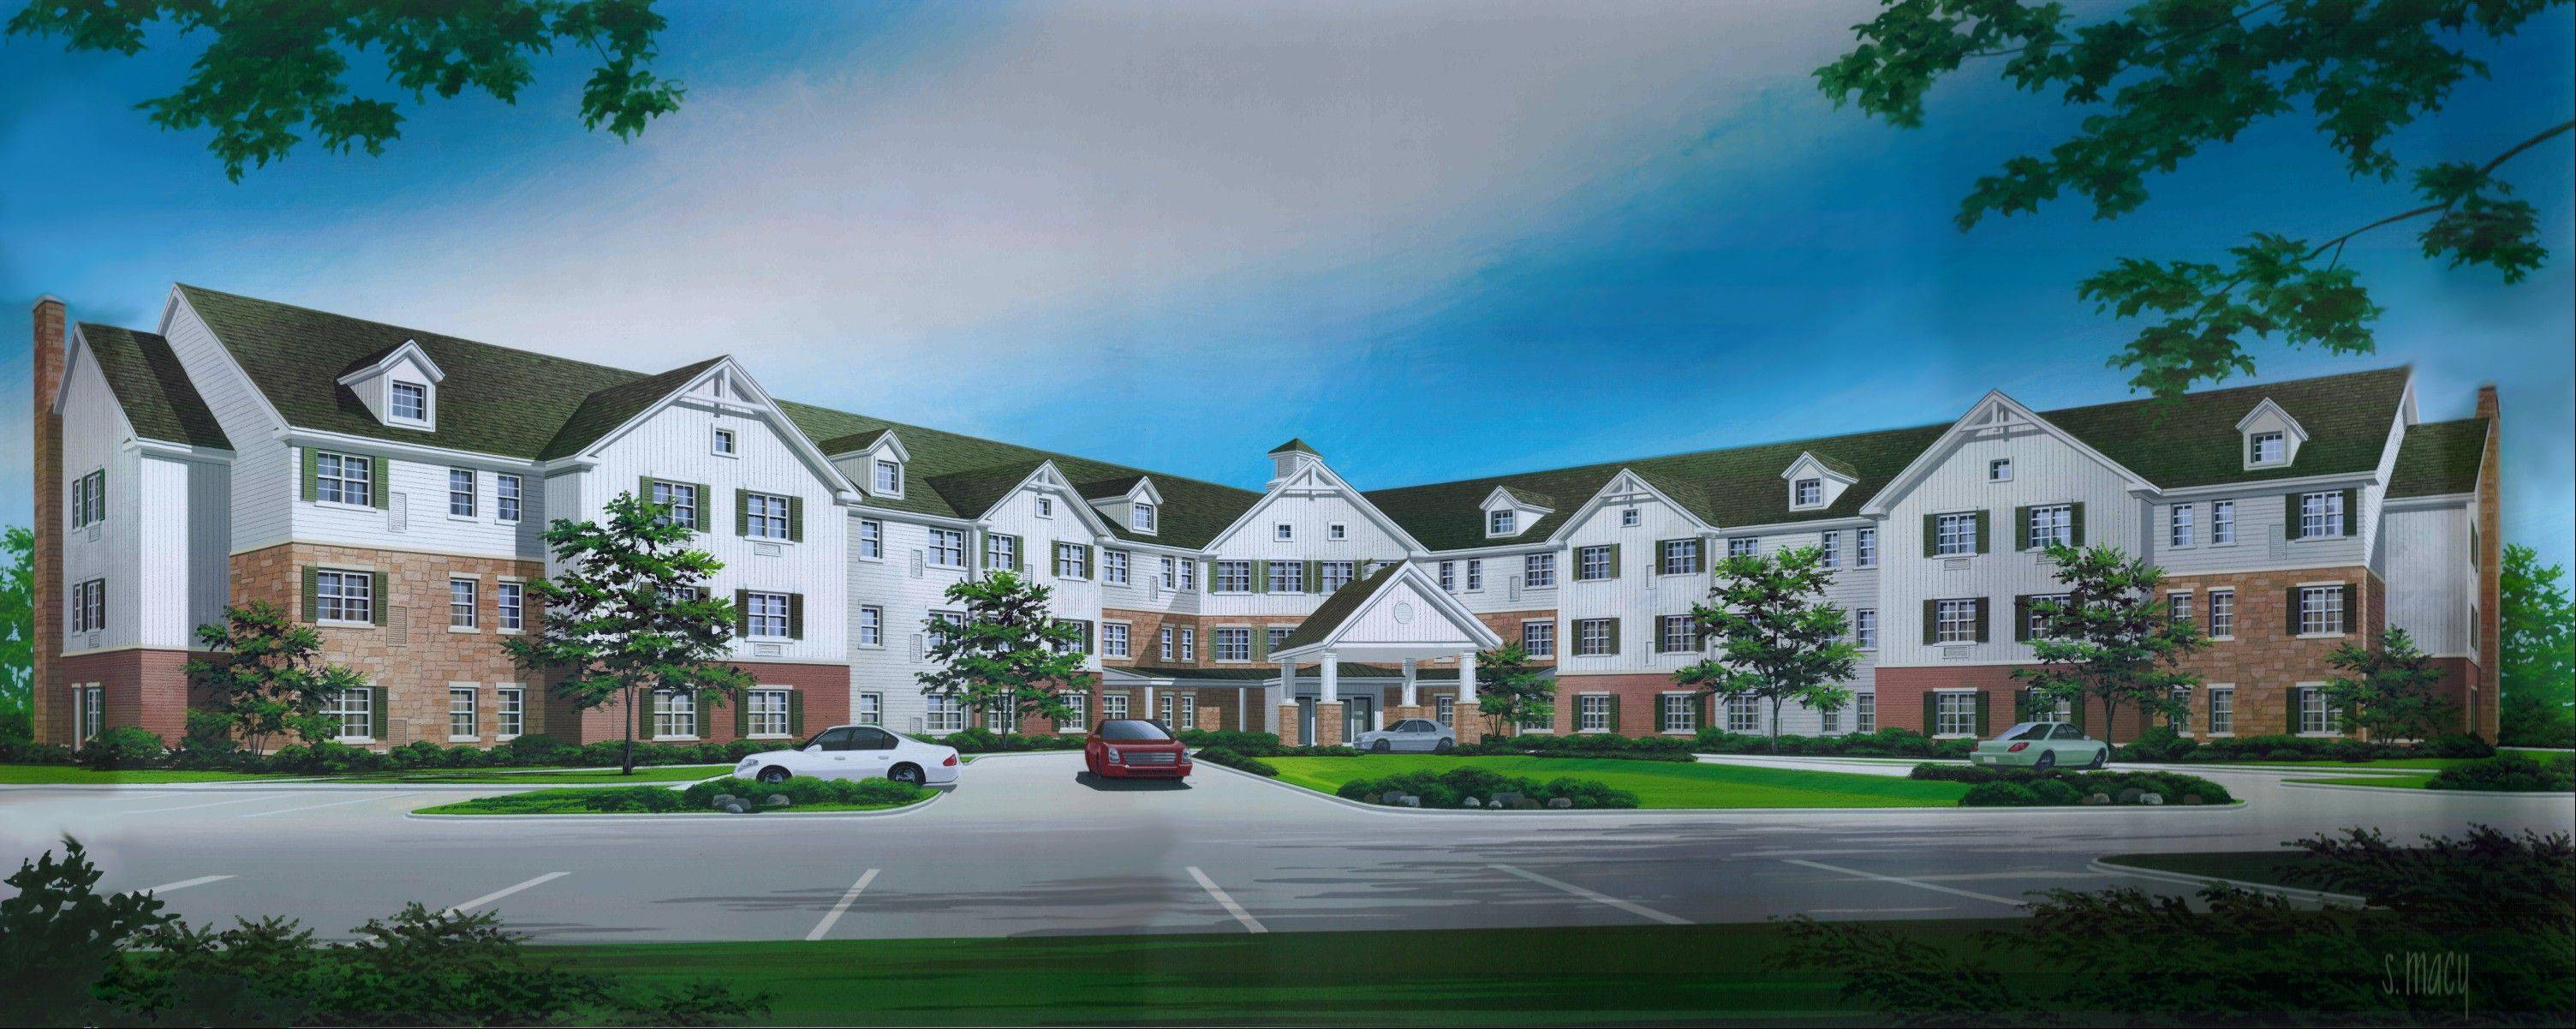 The Deer Path Supportive Living Community is now under construction in Huntley at 12500 Regency Parkway. The community, reserved for physically disabled adults between the ages of 22 and 64, is expected to open in July 2013.